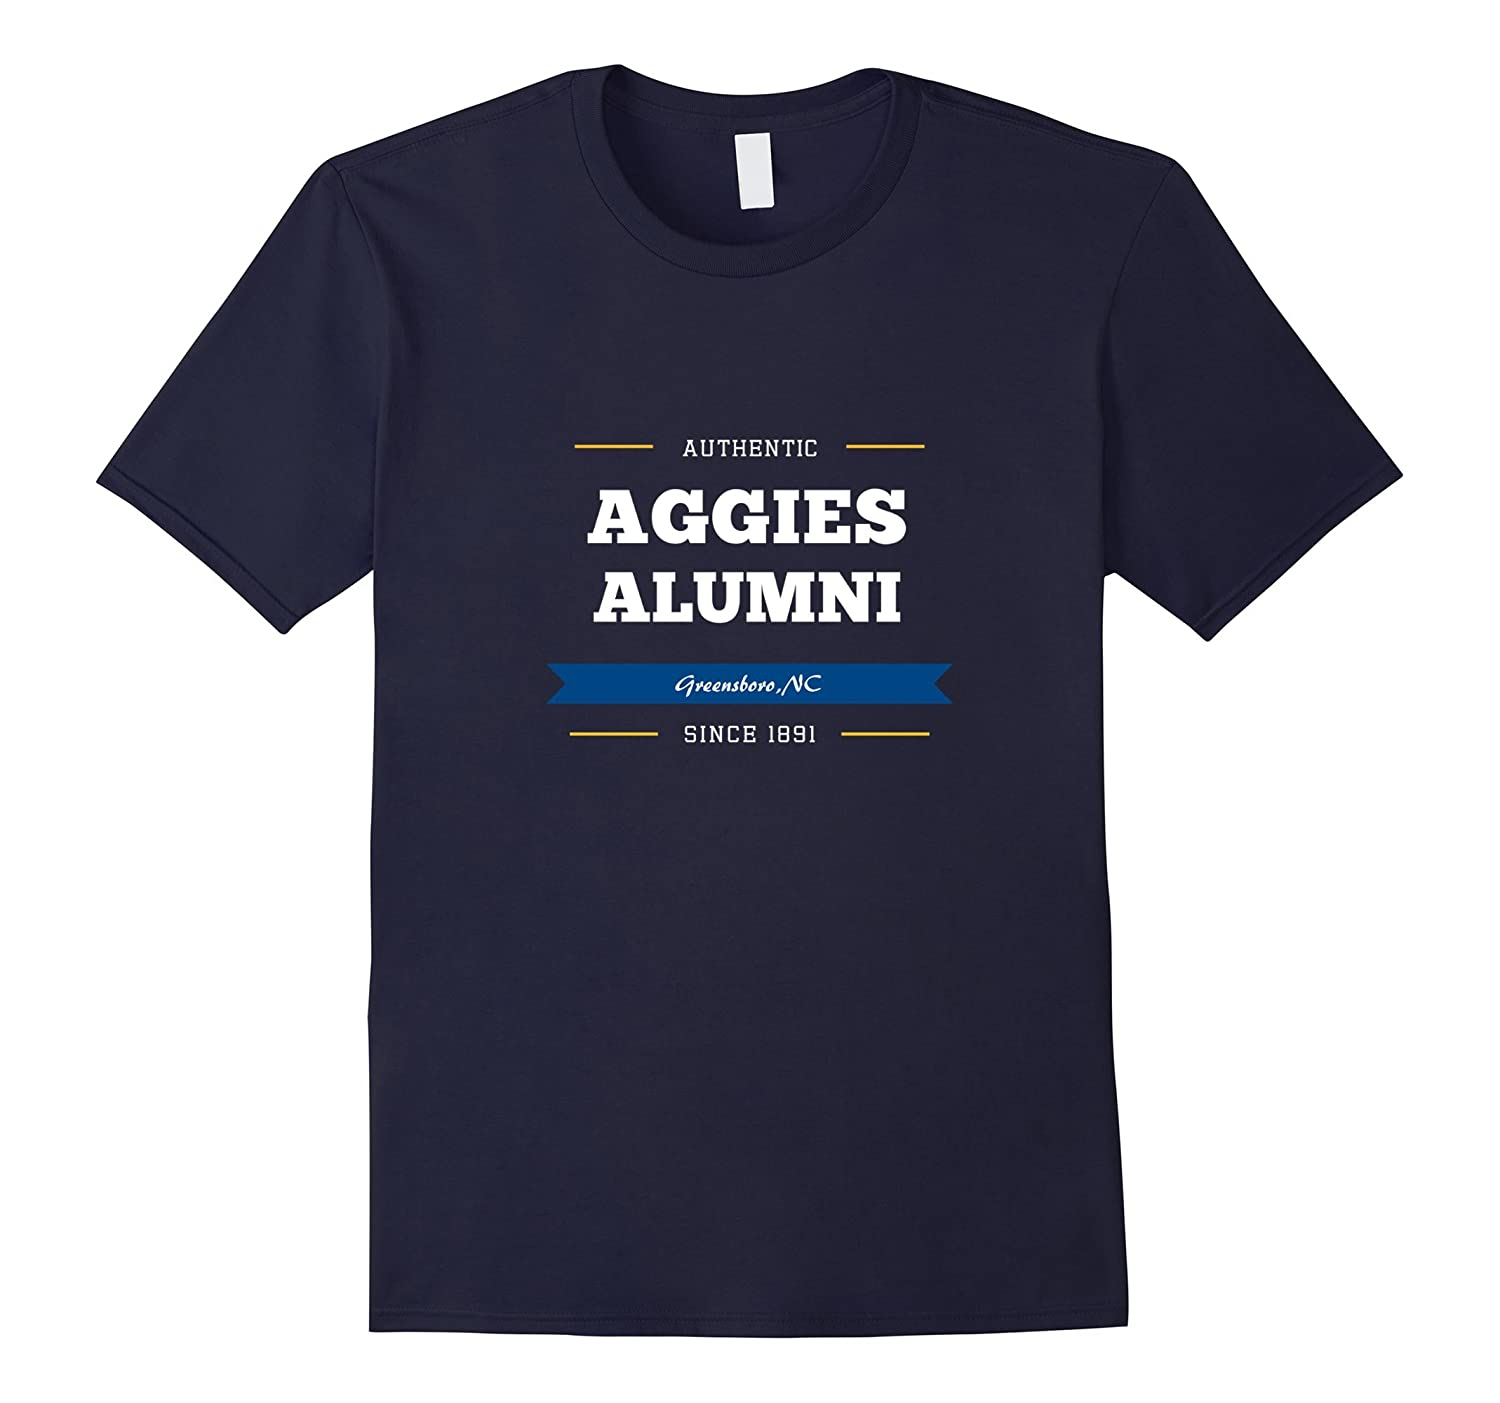 Aggies Alumni Spirit T Shirt A&T-ANZ